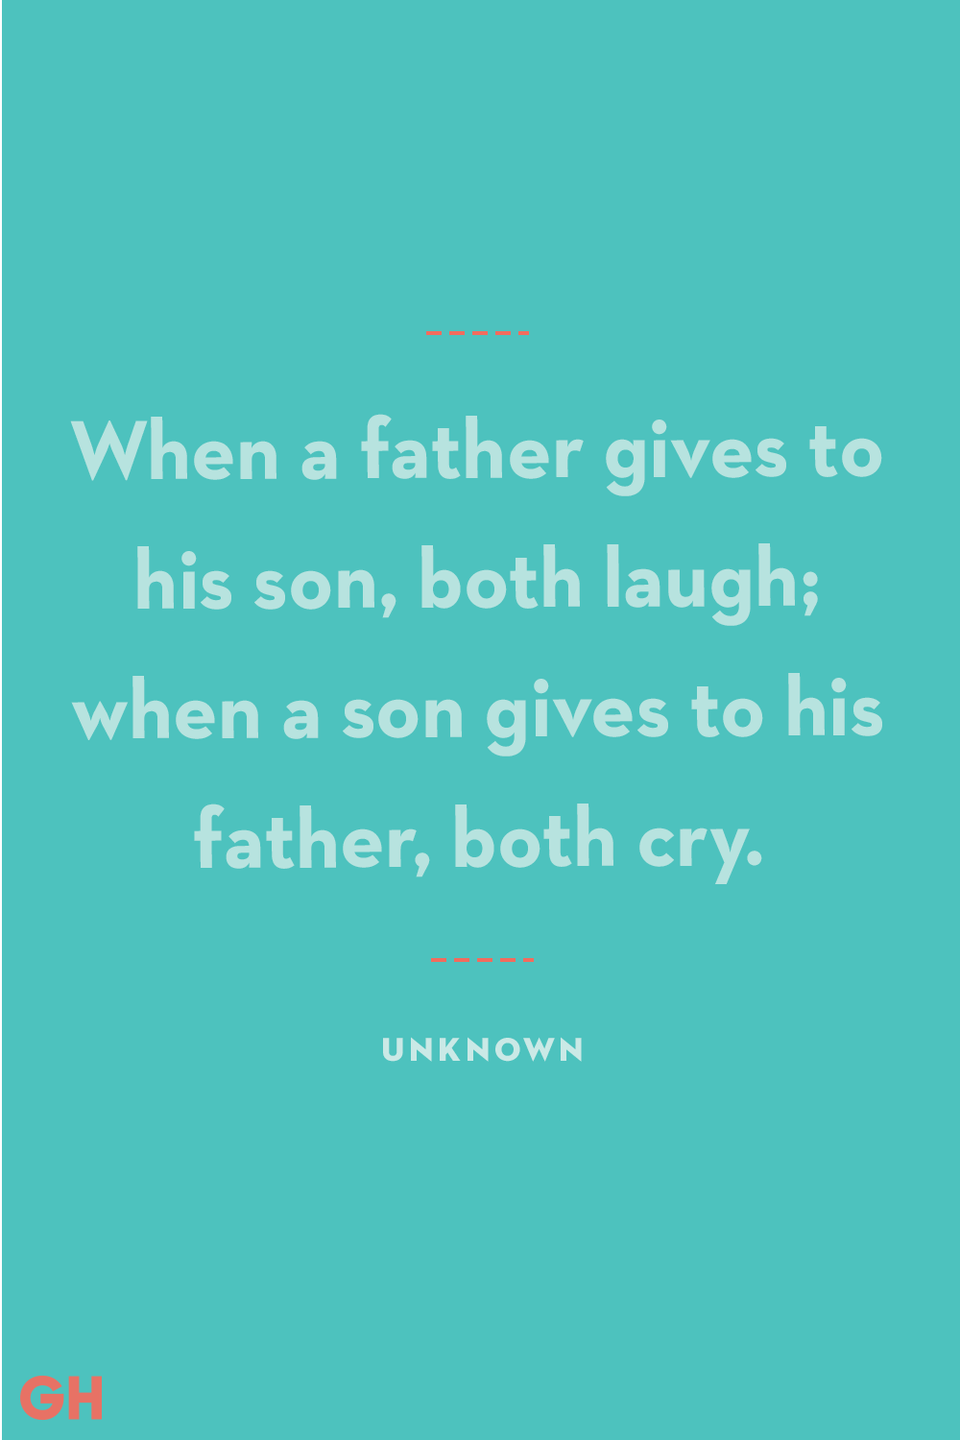 <p>When a father gives to his son, both laugh; when a son gives to his father, both cry.</p>